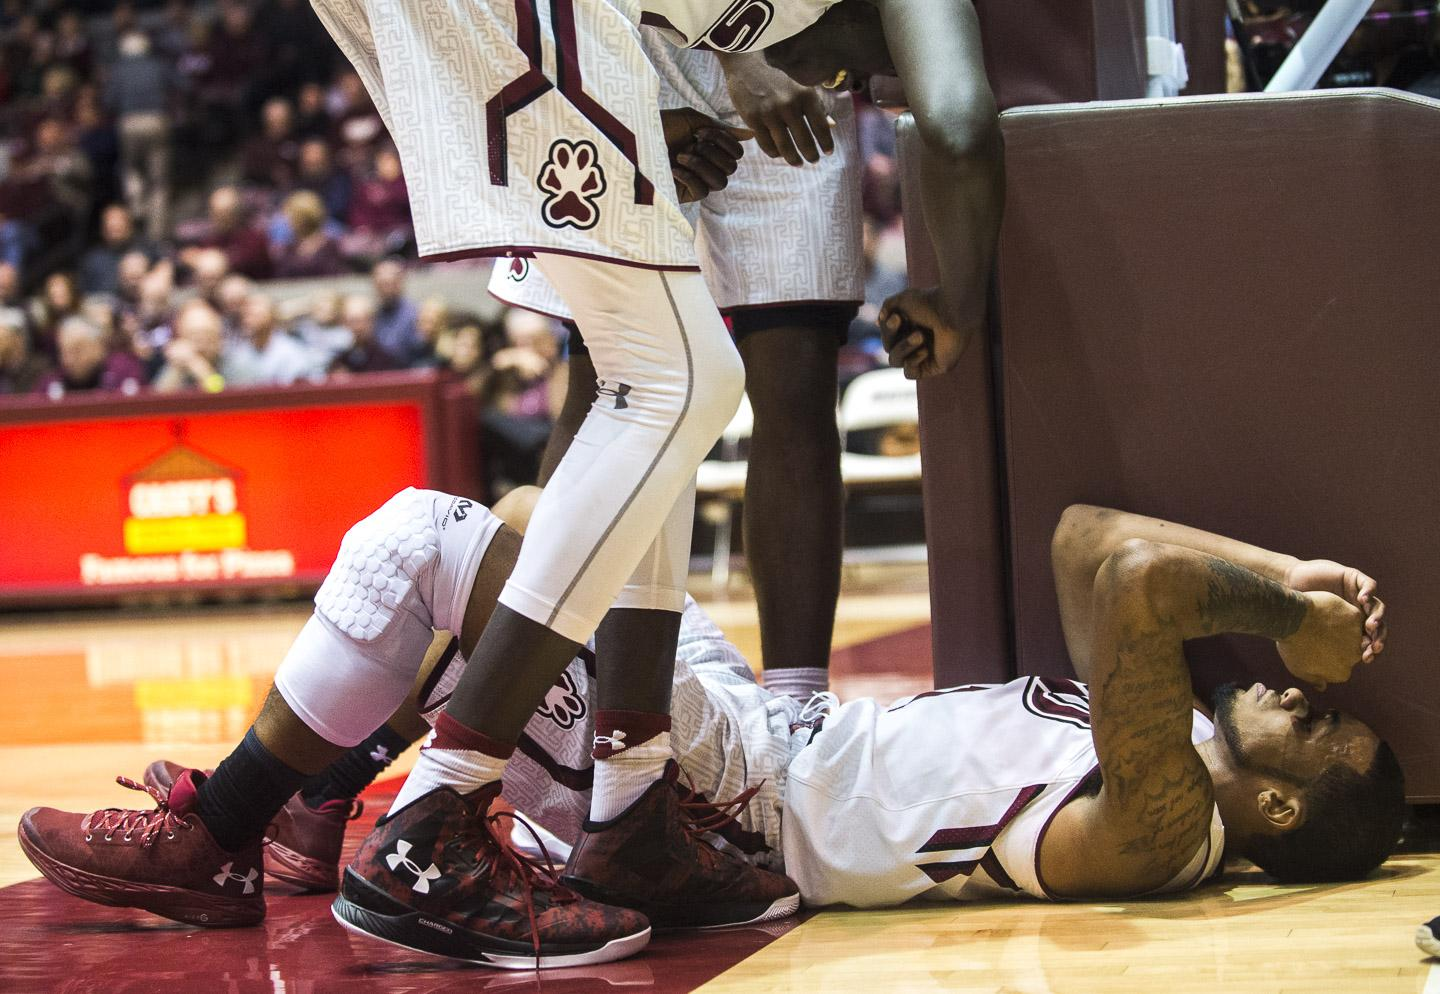 Senior guard Mike Rodriguez recovers from a fall during the Salukis' 70-55 win against Saint Louis University on Wednesday, Dec. 14, 2016, at SIU Arena. (Ryan Michalesko | @photosbylesko)